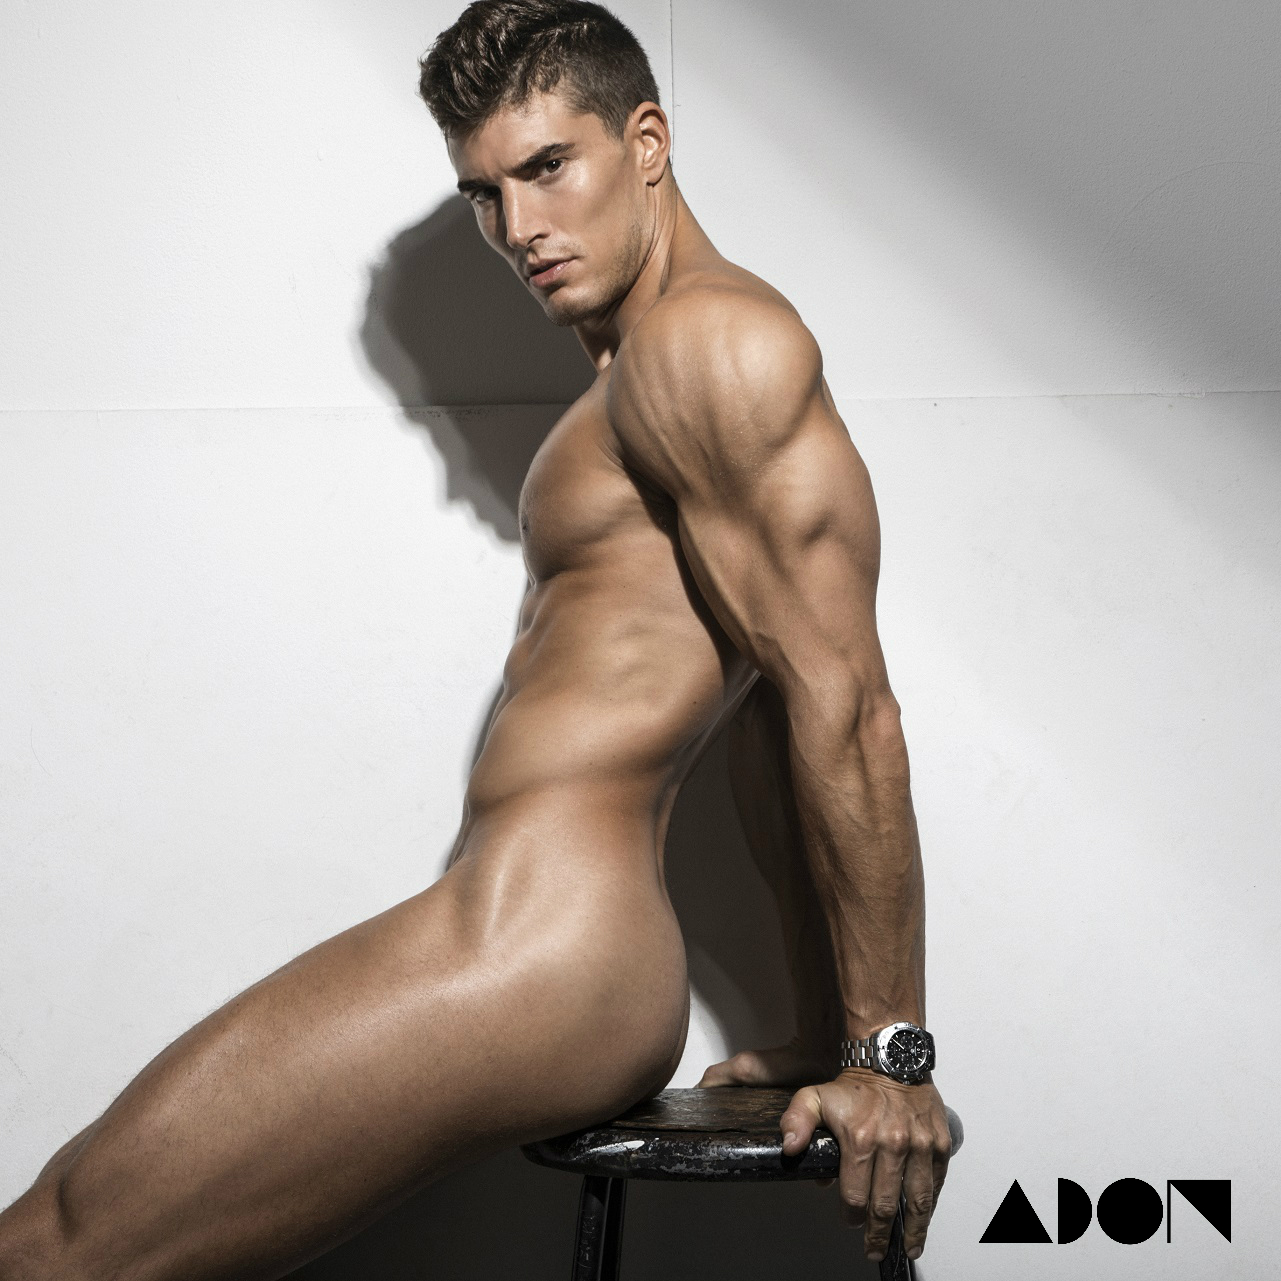 Adon Exclusive: Model Ramón Puñet Corvillo By Rick Day